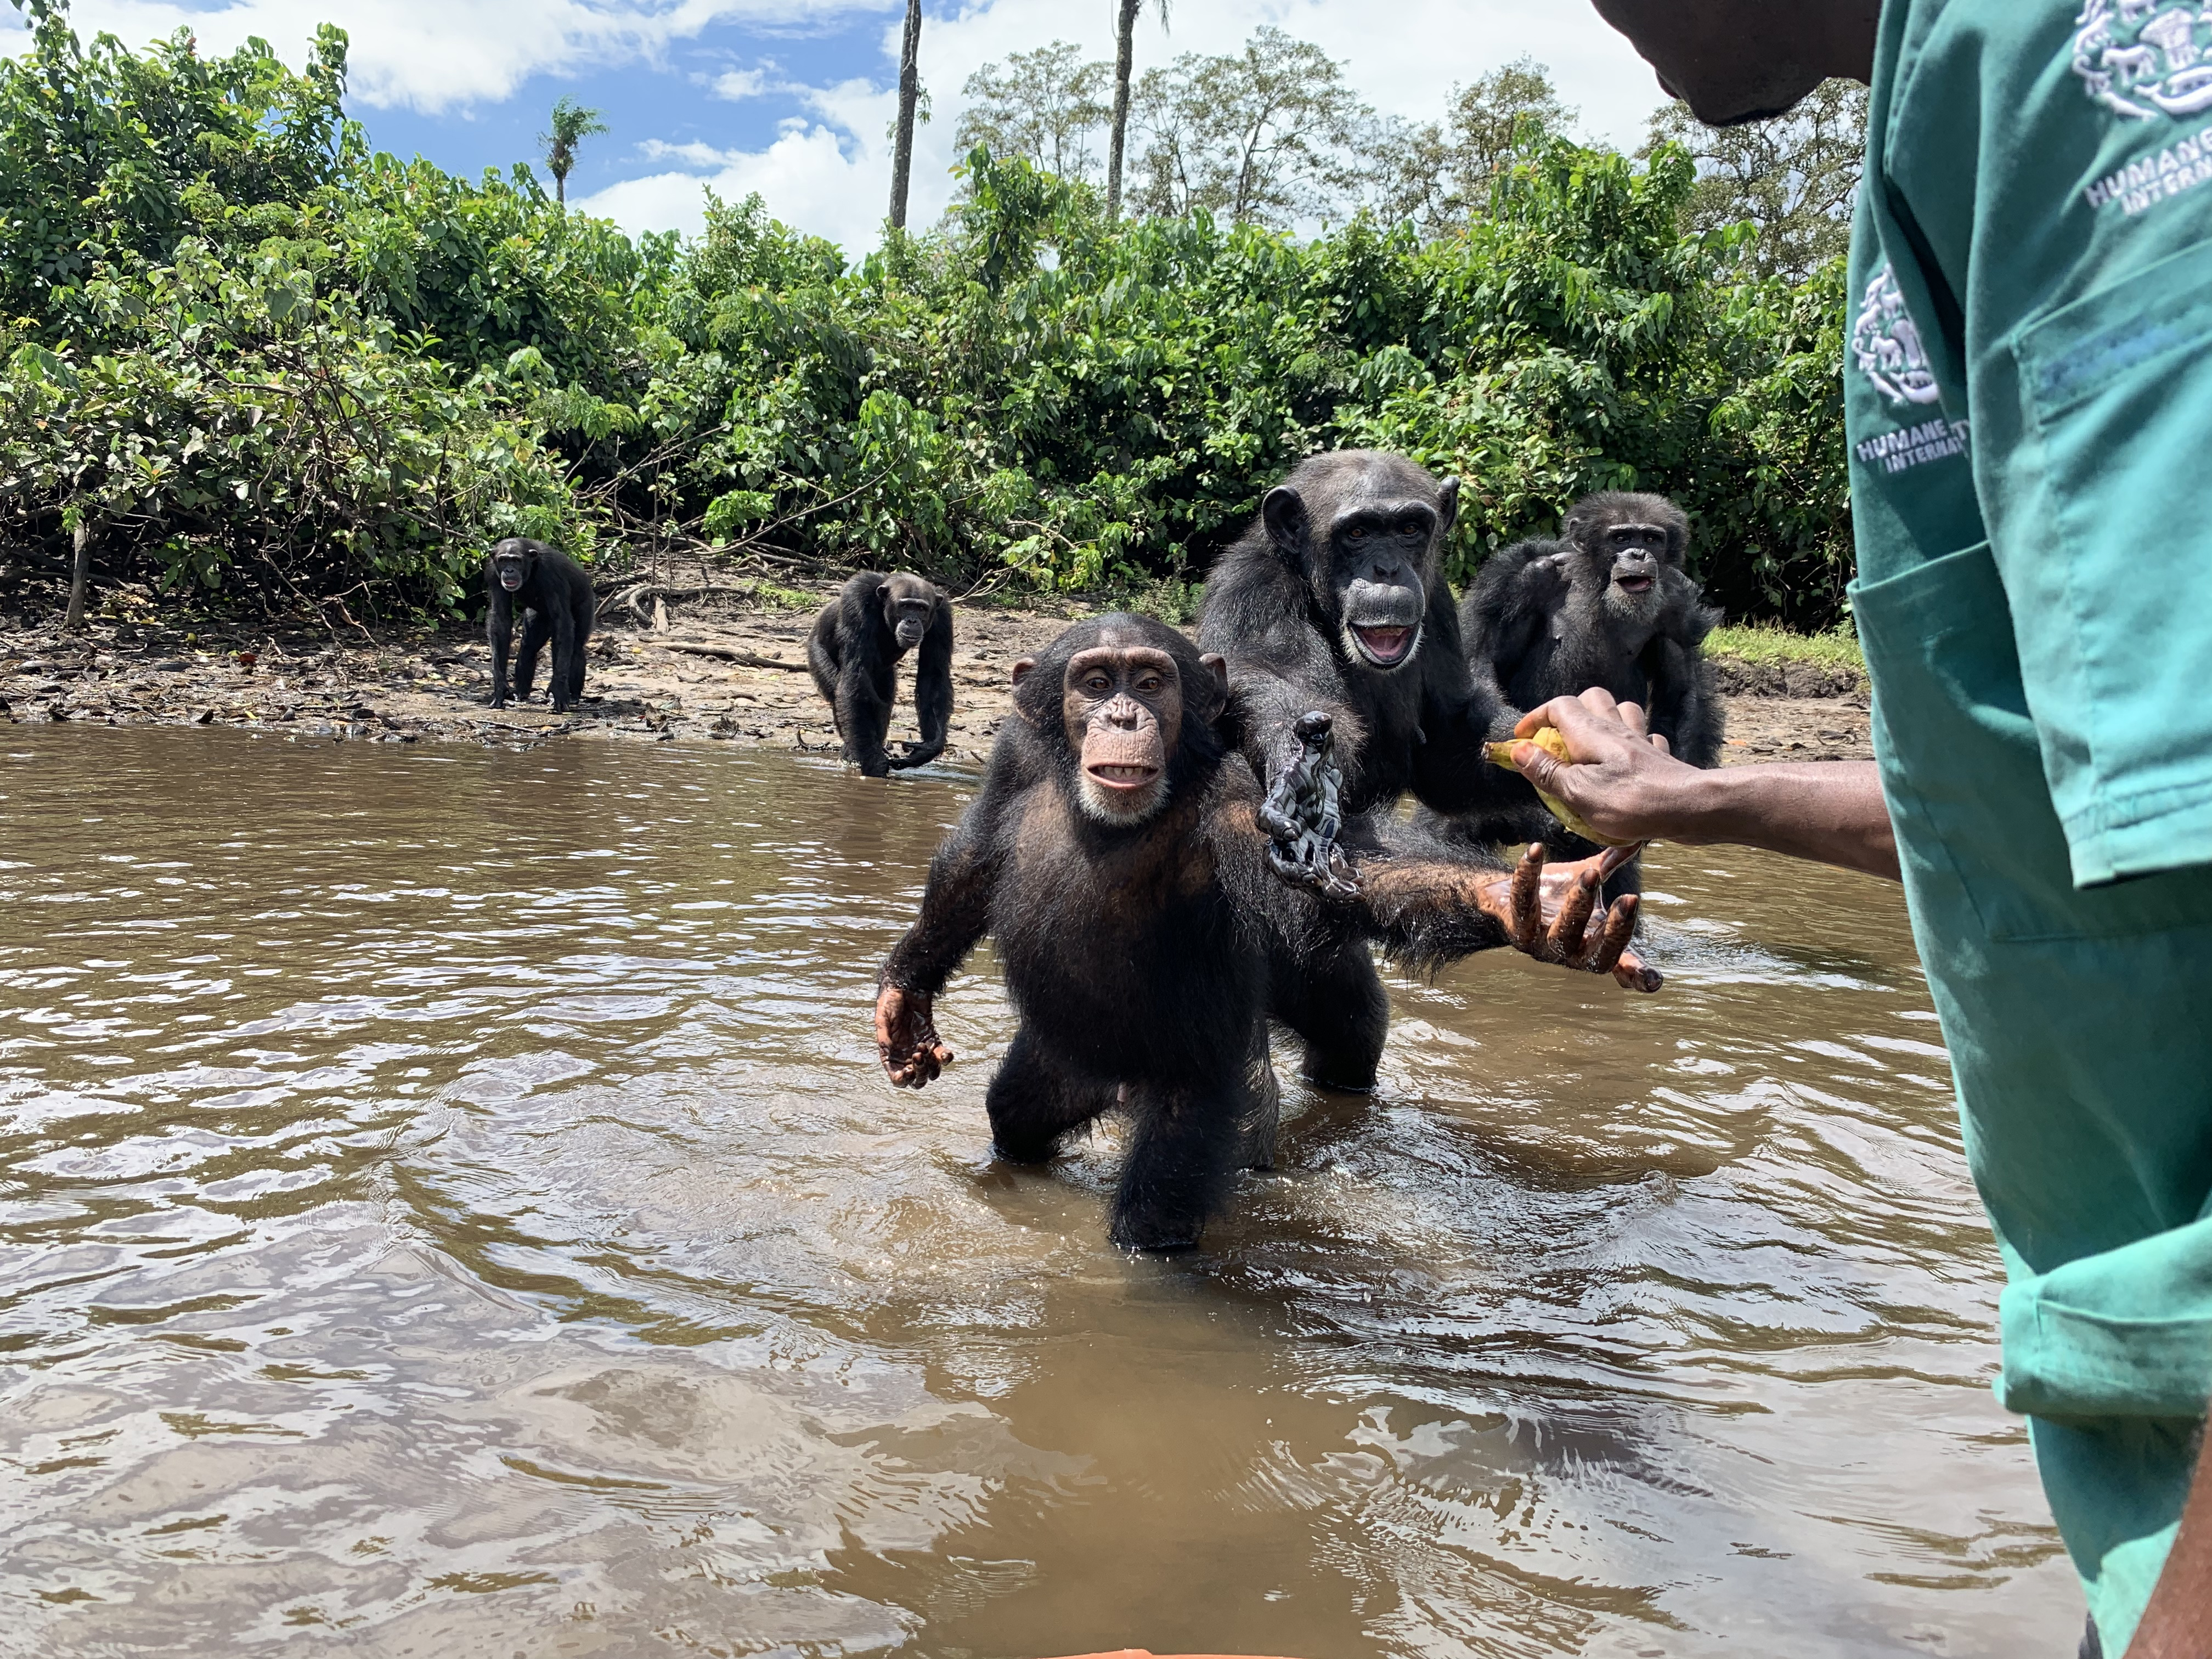 Chimpanzees catch food thrown to them by a team of caretakers on Monkey Island, Liberia, on Nov. 3, 2019. The chimpanzees were infected with hepatitis B in the 1970s. MUST CREDIT: Washington Post photo by Danielle Paquette